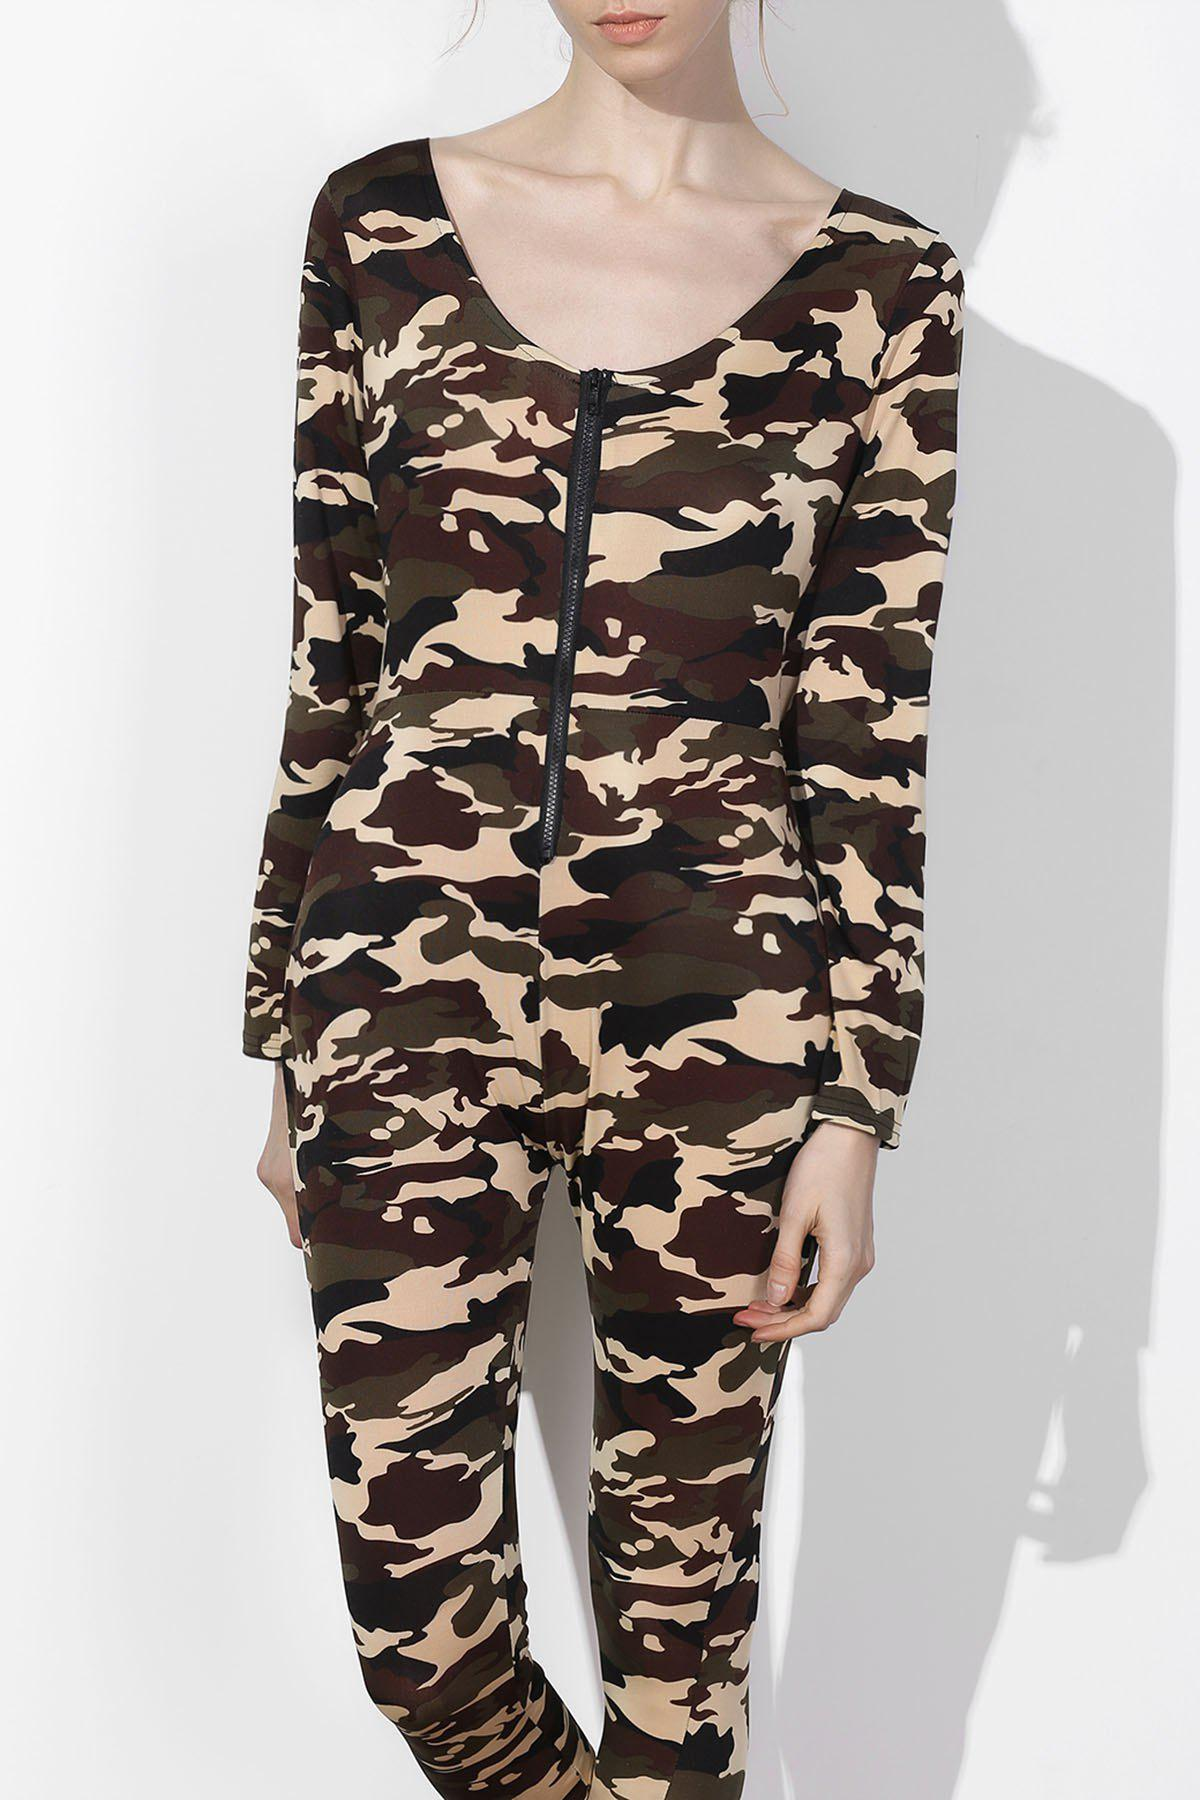 Sexy Camo Plunging Neck Long Sleeve Jumpsuit For Women - ARMY GREEN M